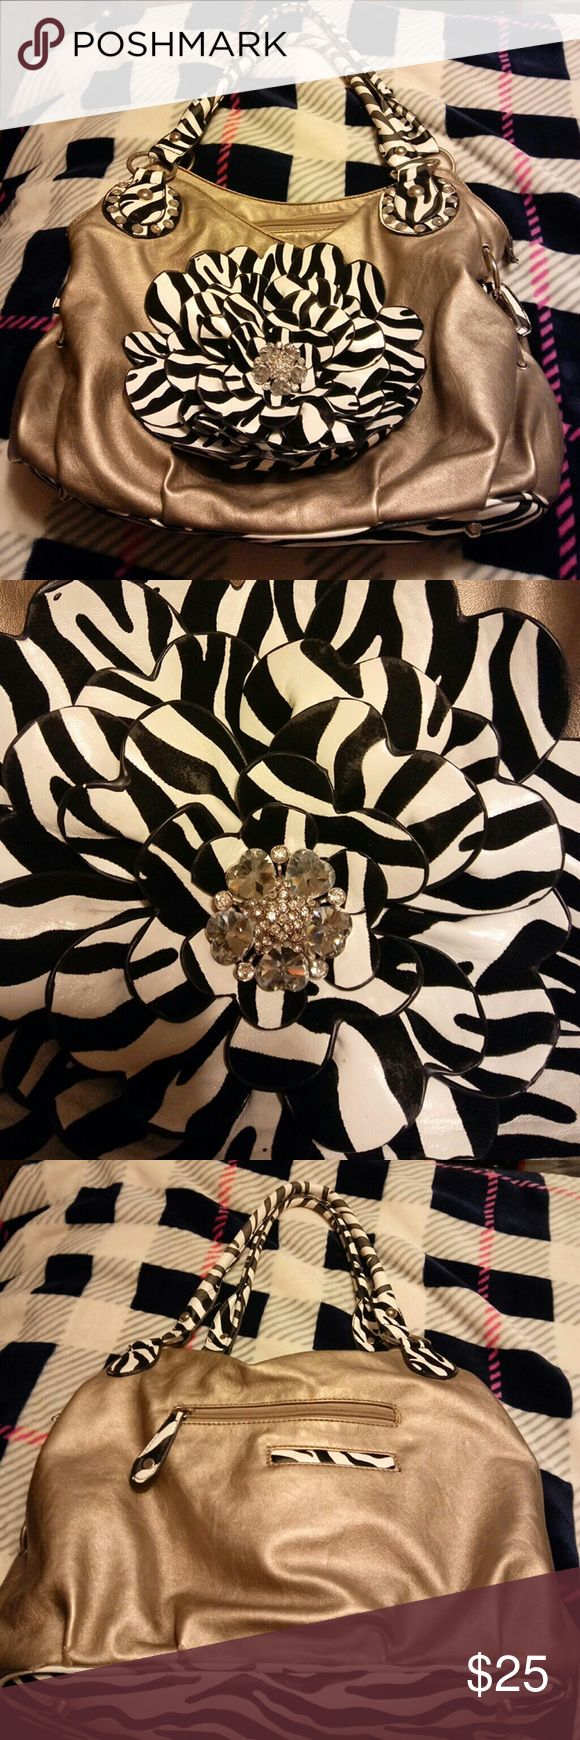 Gold black and white flower zebra fashion purse Make a statement hunni!! This is super cute and fun! Well taken care of with no known external blemishes. Inside is just work but still nice and clean. Bags Shoulder Bags